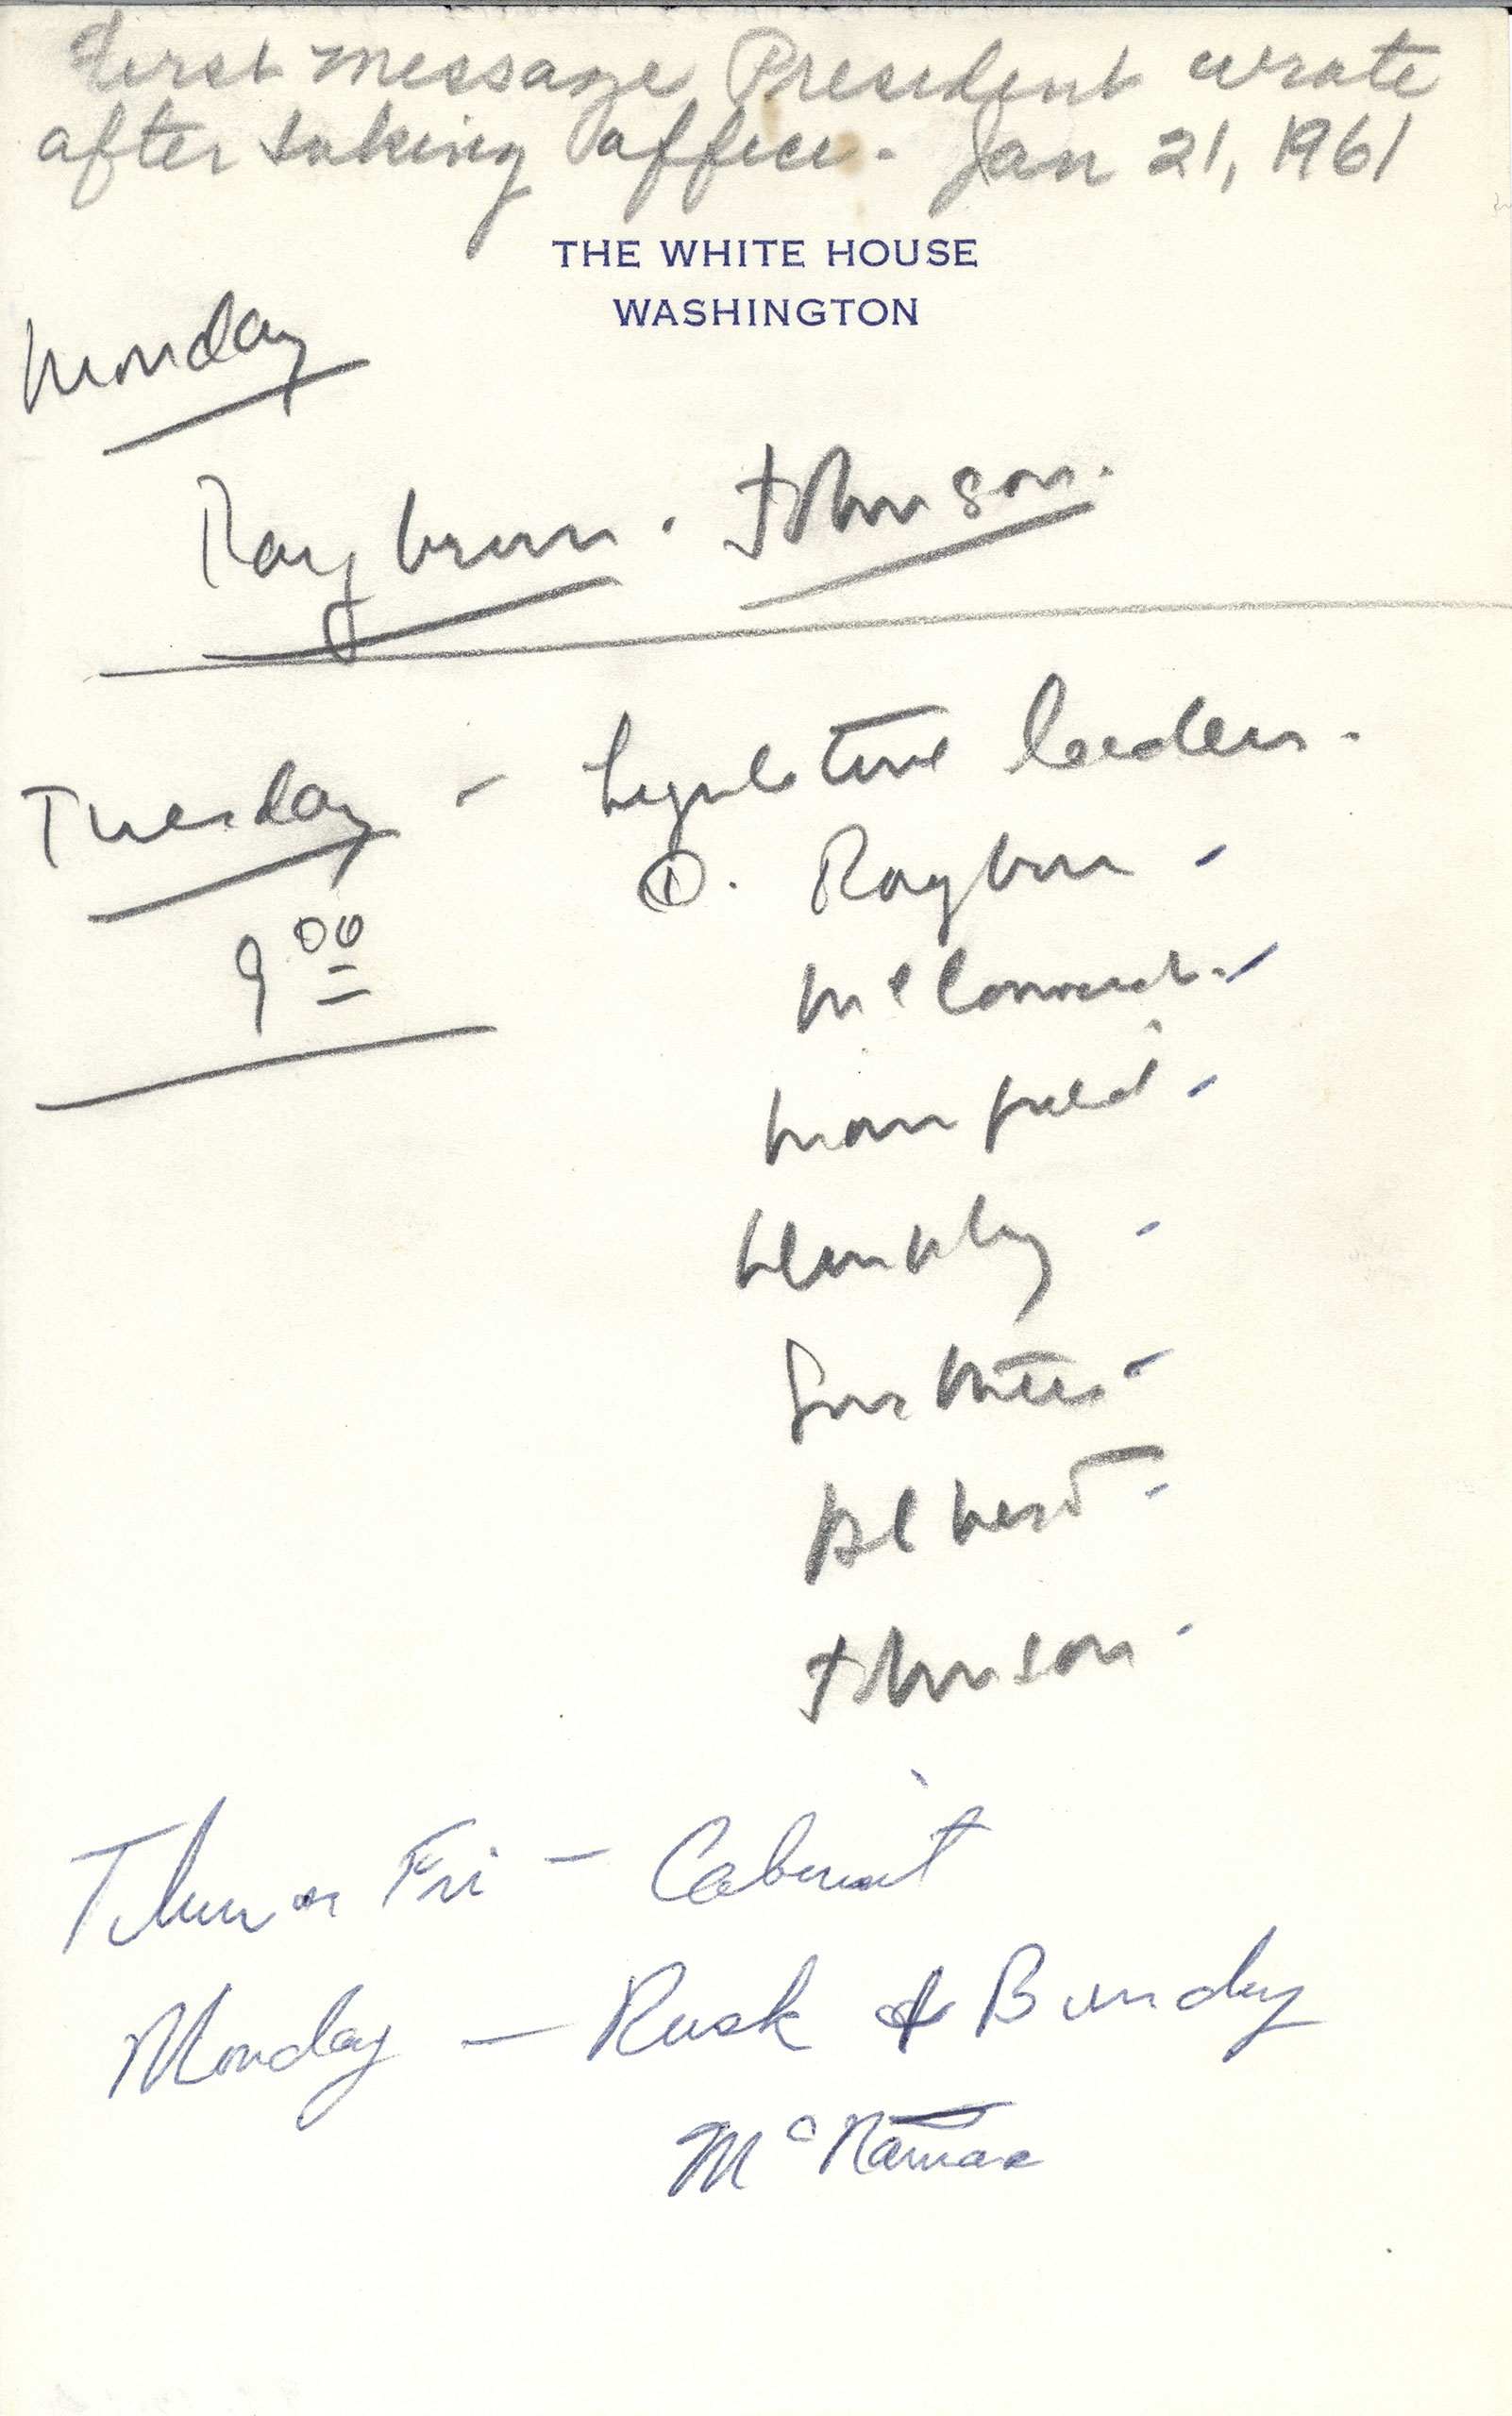 President Kennedy's notes from his first full day as President, Jan. 21, 1961.